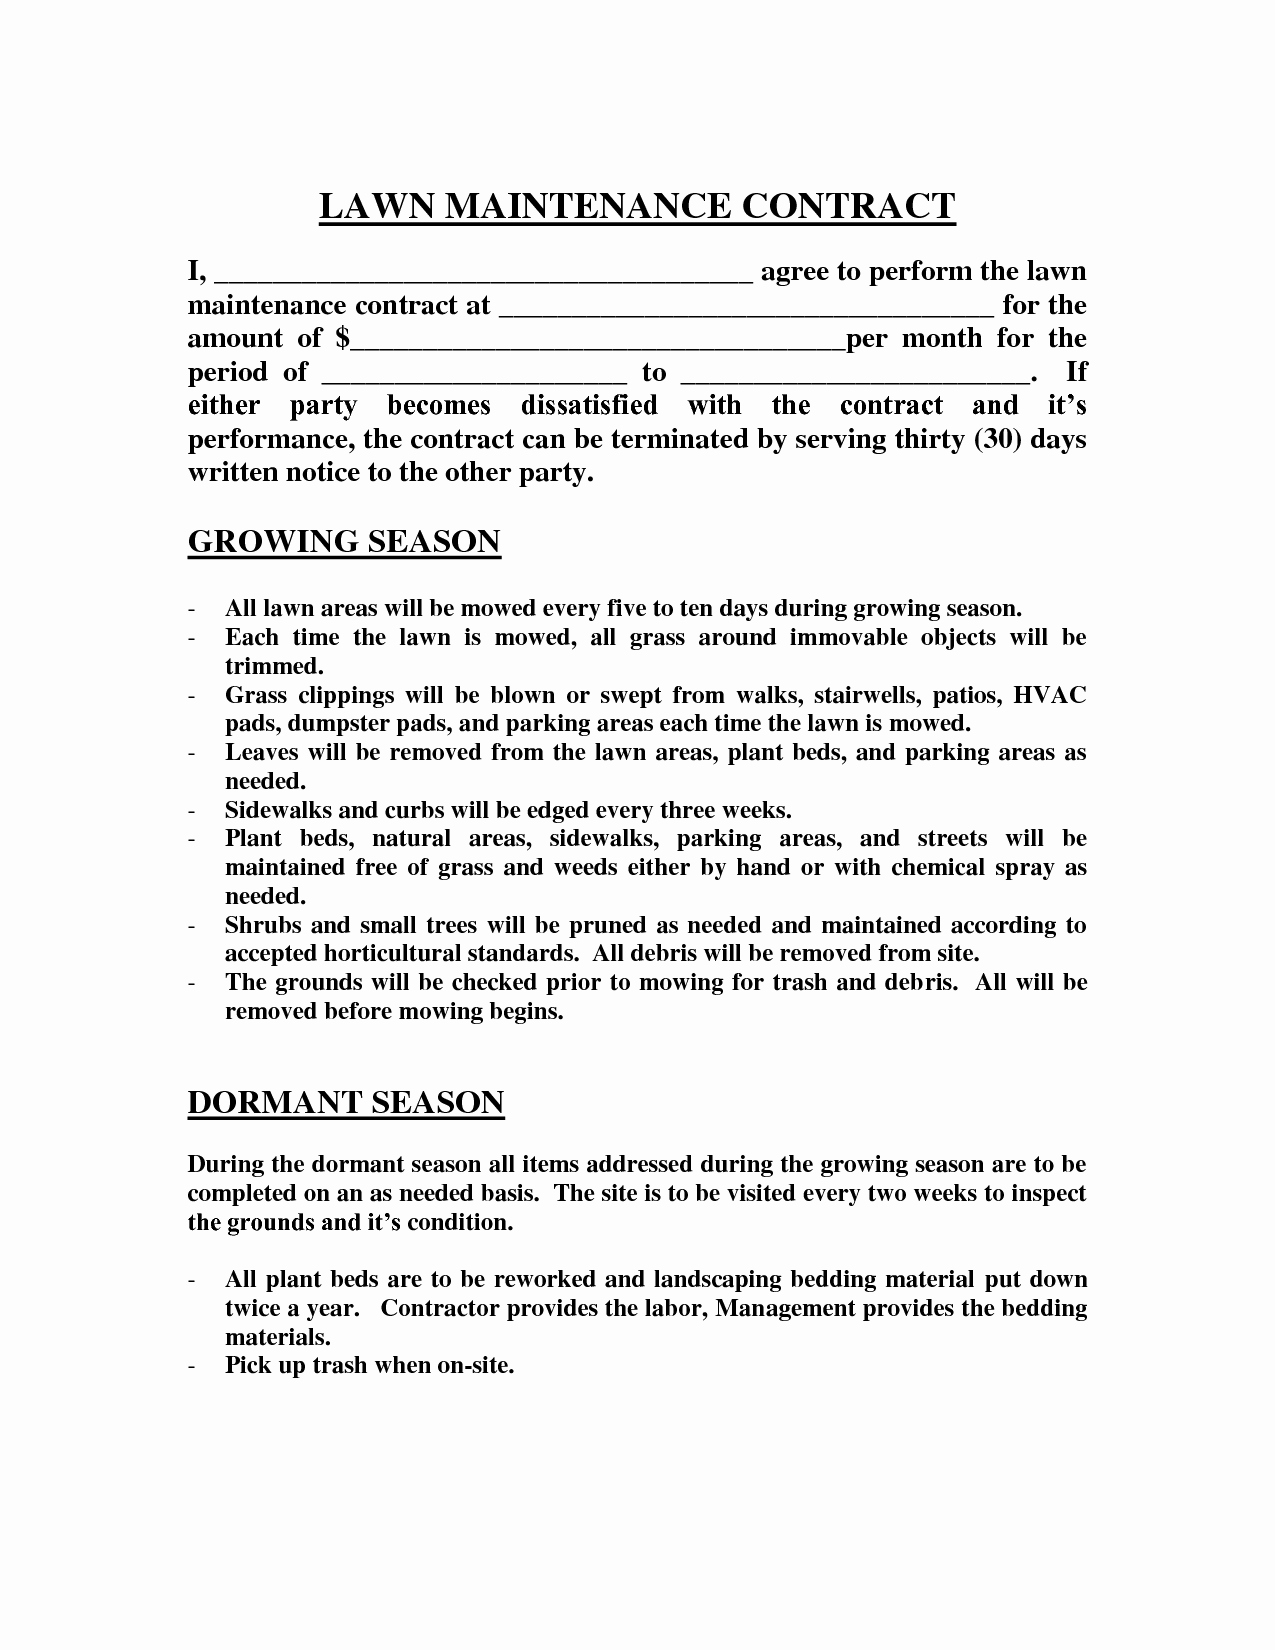 Lawn Care Contract Template Free New Contract Lawn Care Contract Template Lawn Care Contract